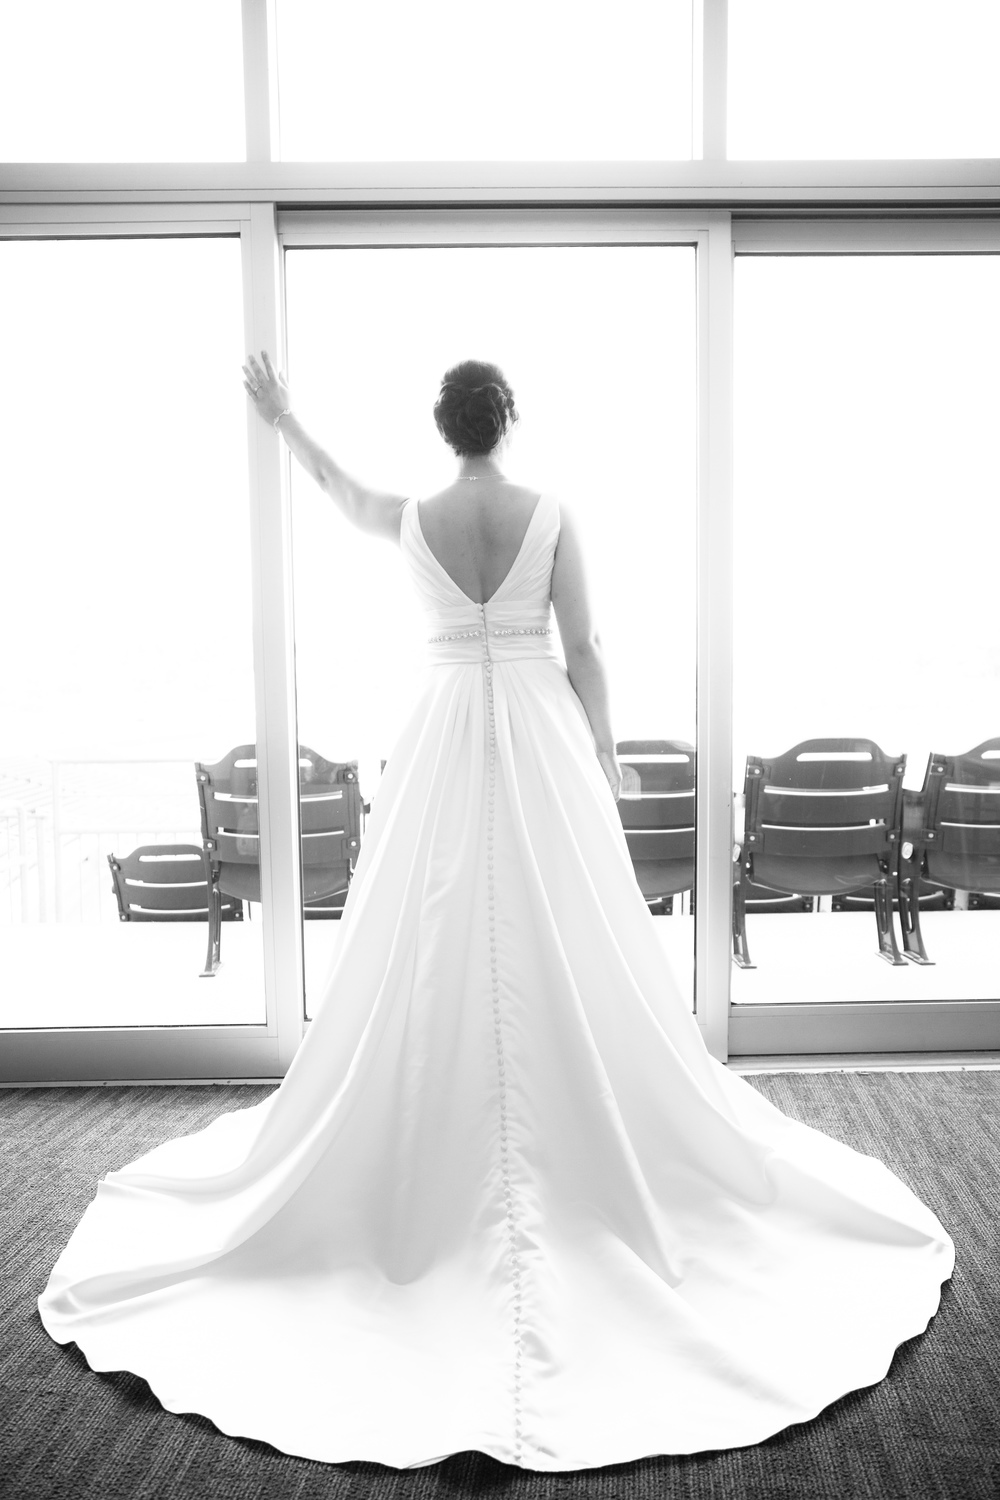 From one of the suites. Those are buttons running all the way down the dress. Seriously though. So beautiful.